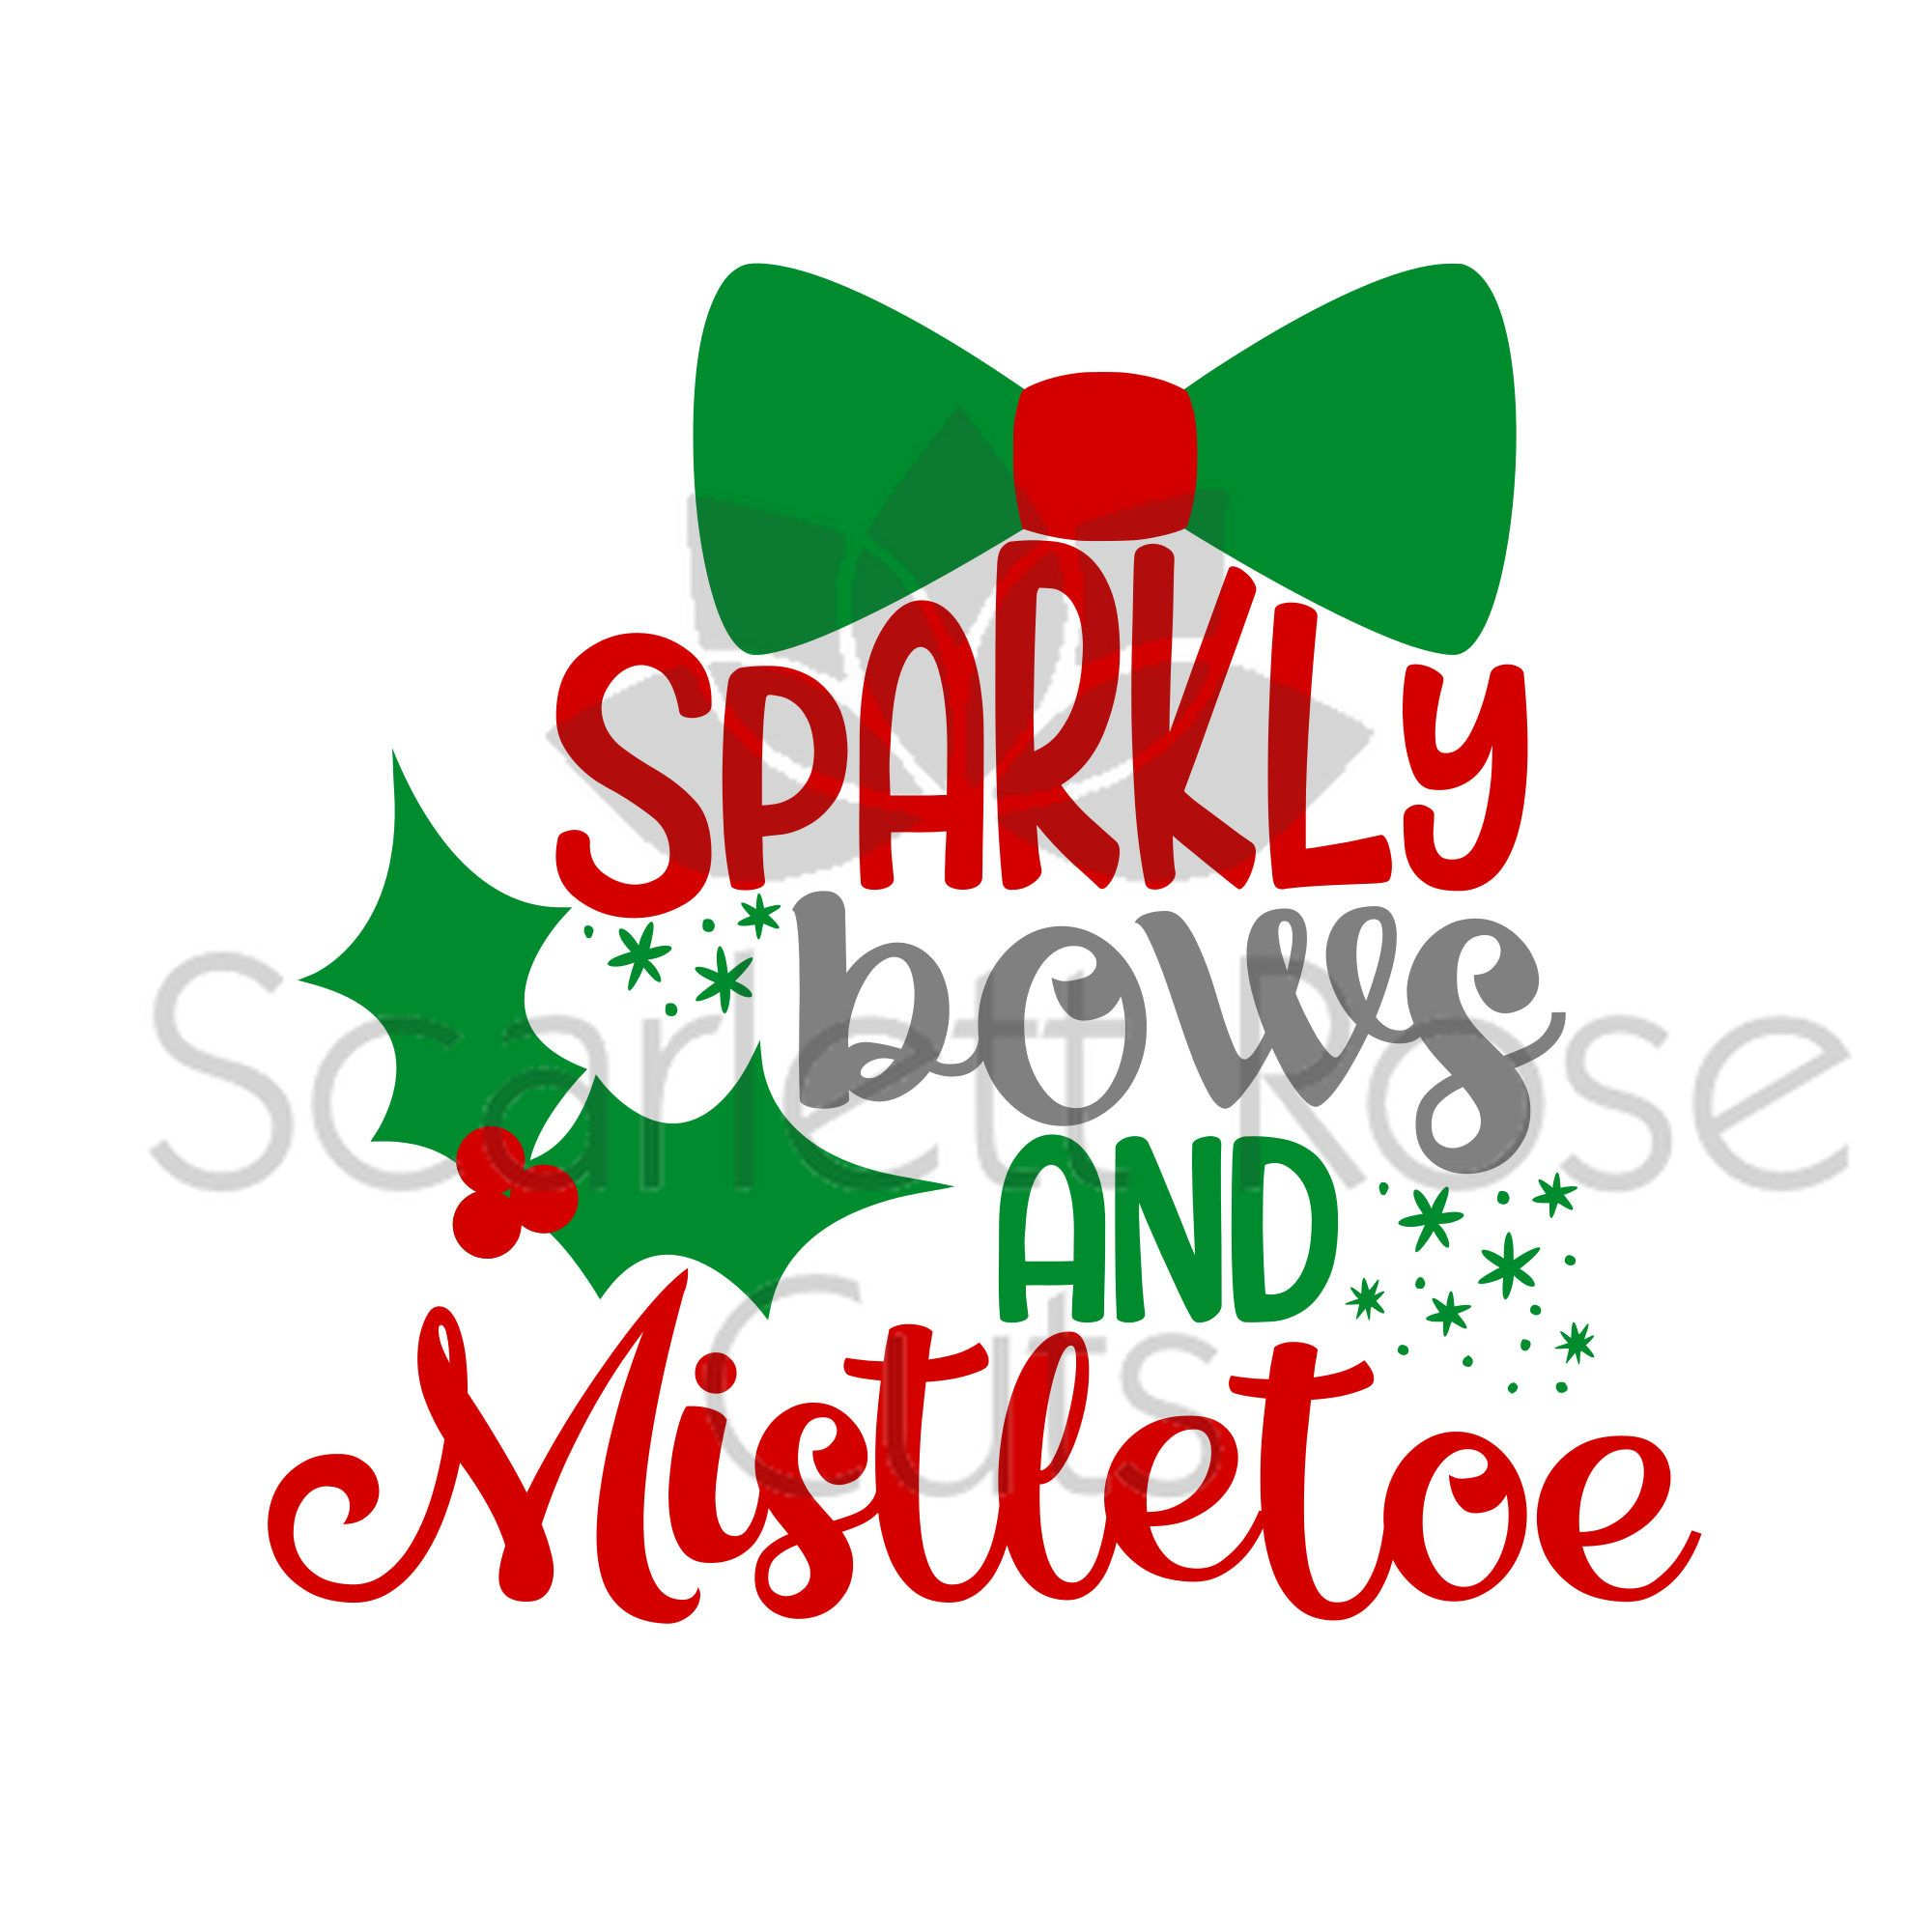 Sparkly Bows and mistletoe Christmas girl SVG cut file for